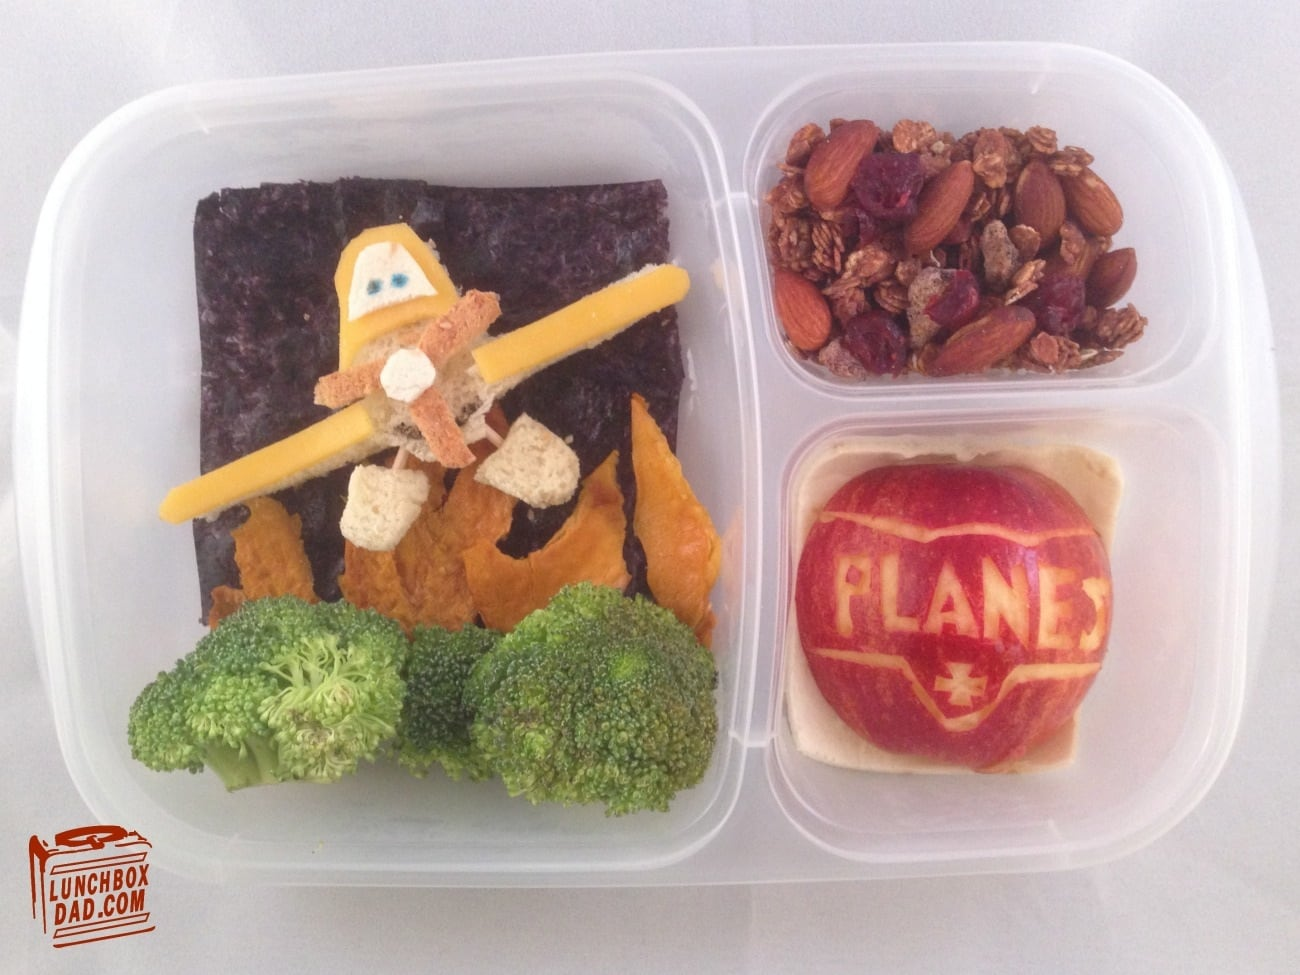 planes-lunch.1500x1000